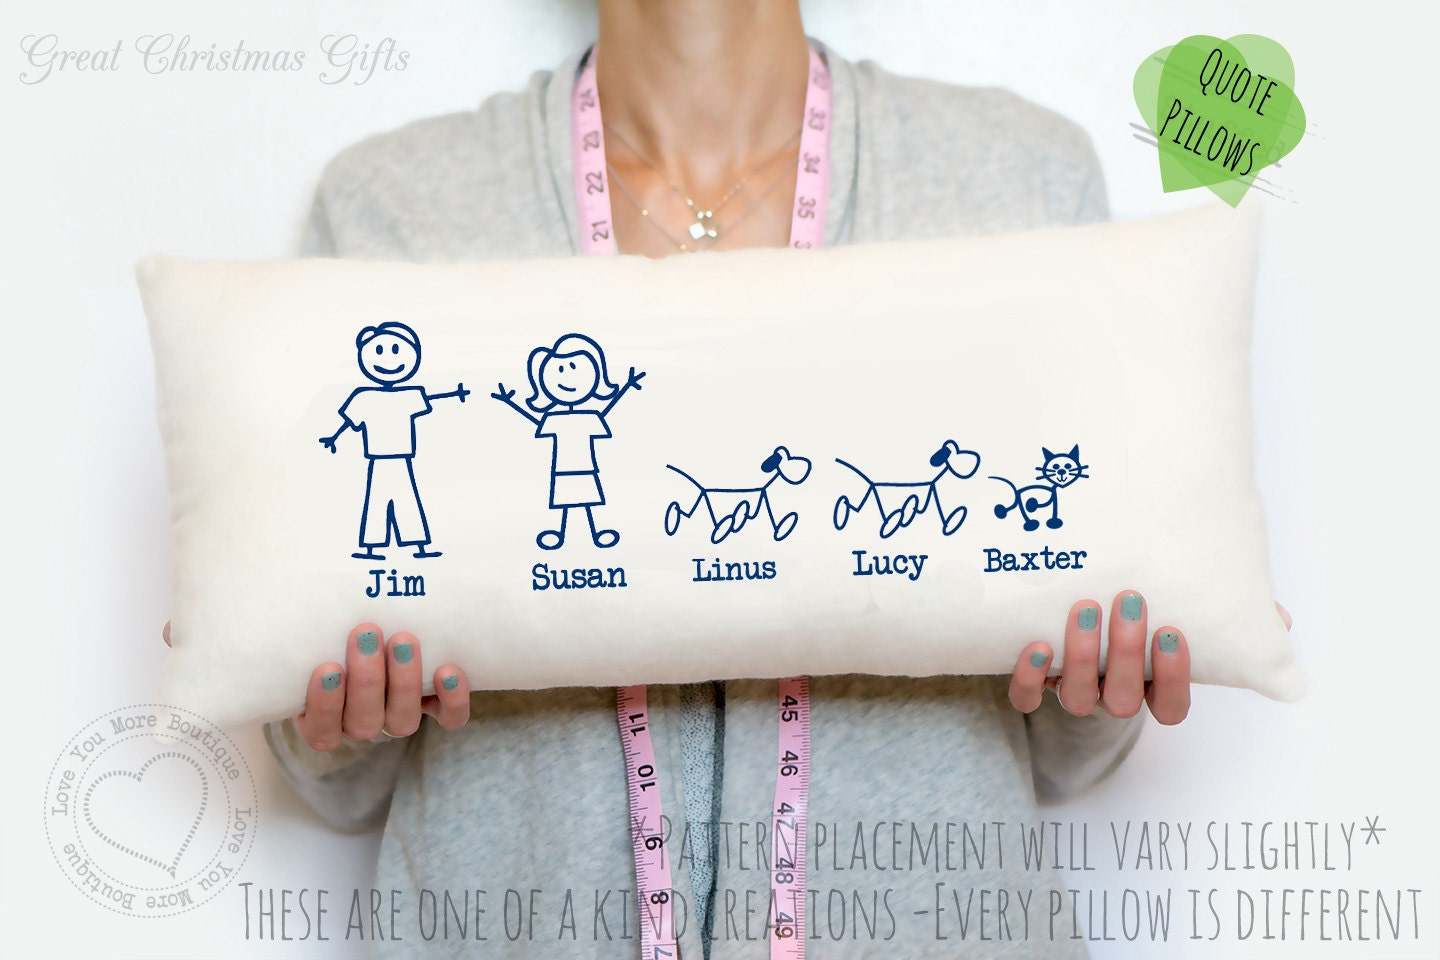 2 Year Wedding Anniversary Gift Ideas Cotton : Year cotton anniversary gift Stick figure family pillow